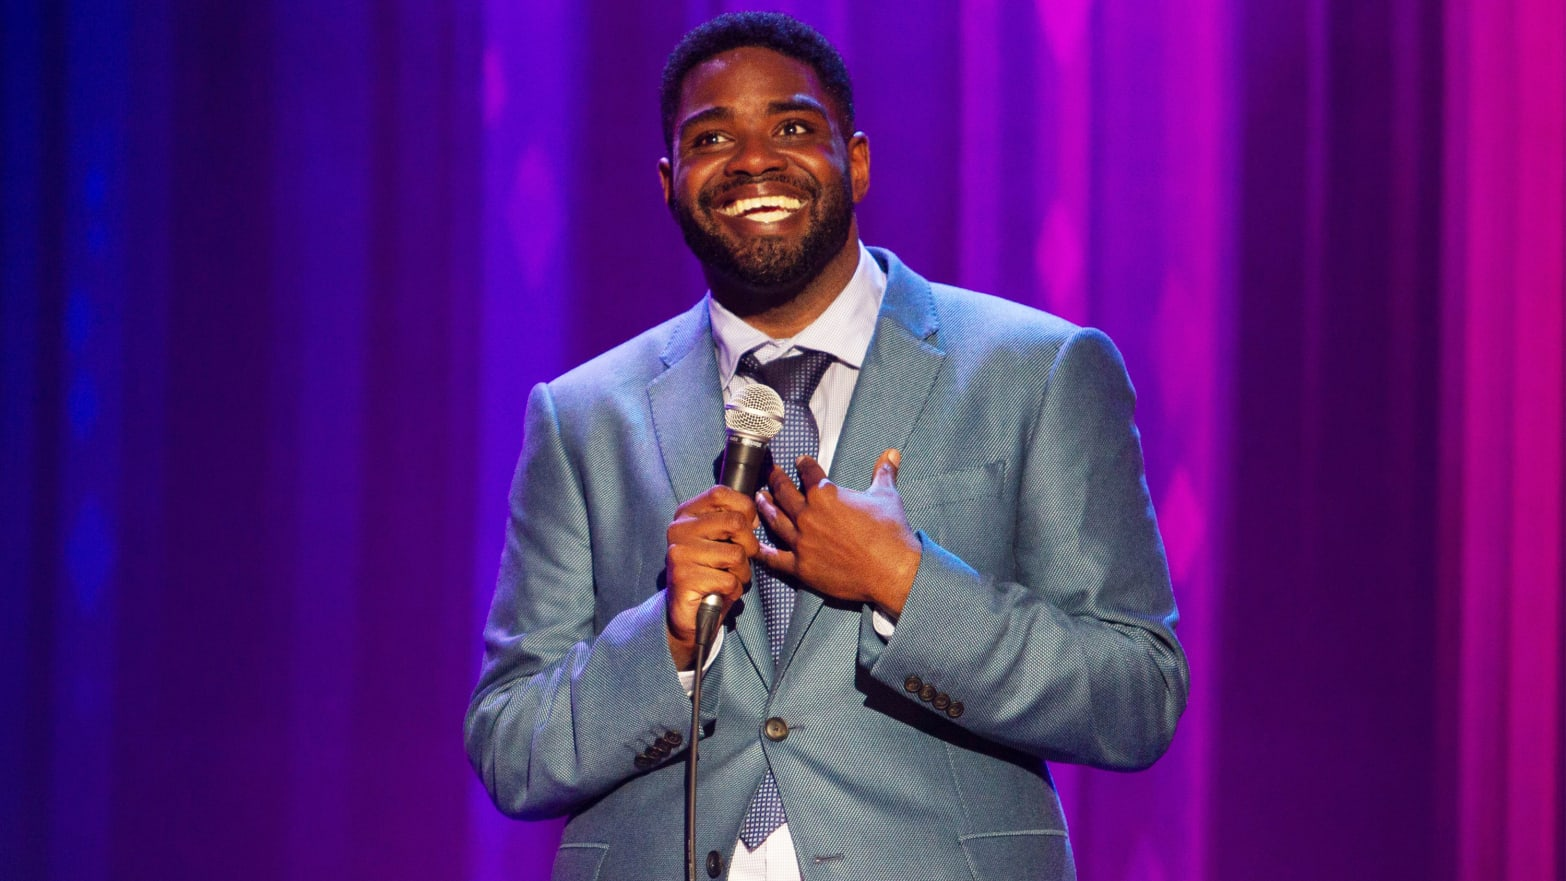 Ron Funches Turned Down Netflix for Comedy Central: You 'Don't Tell Me What Comedy Is'